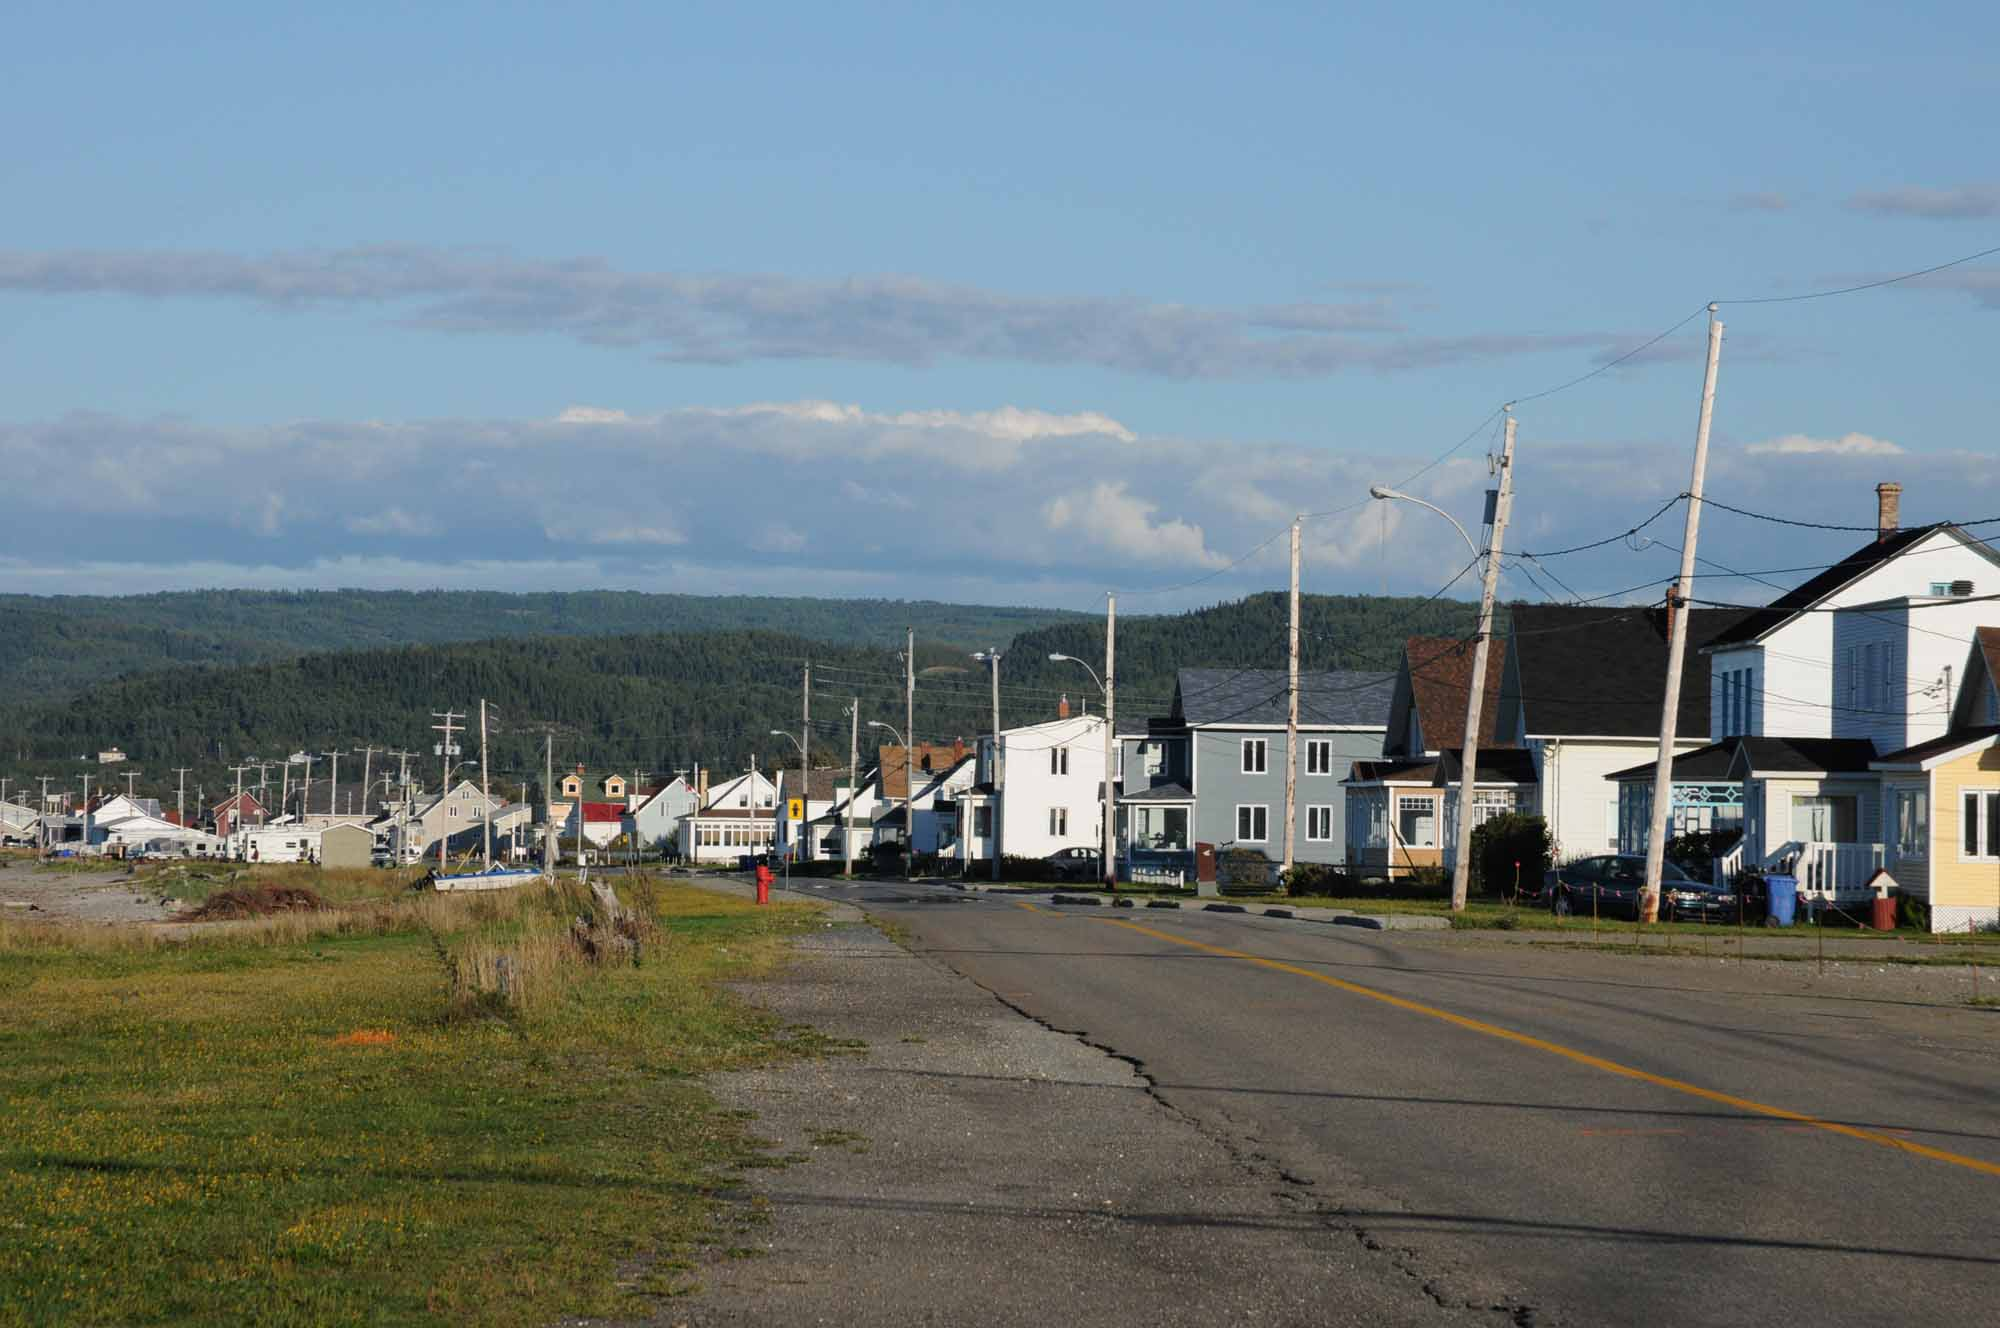 Quebec, the small village of Cap Chat in Gaspésie